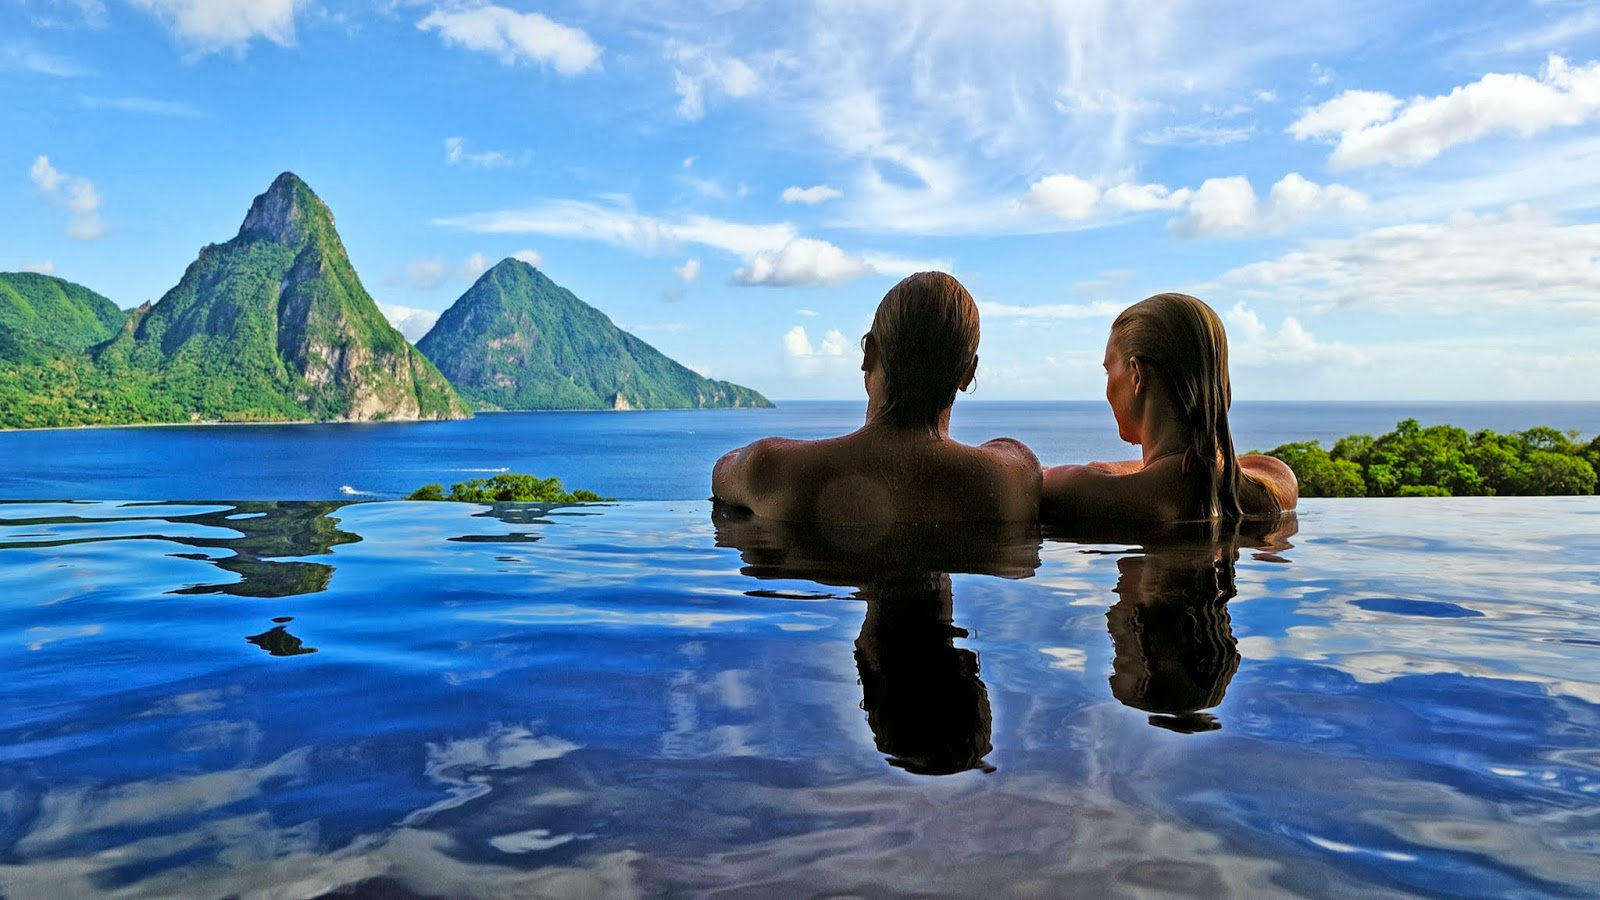 Location St Lucia In Caribbean: Travel My Way